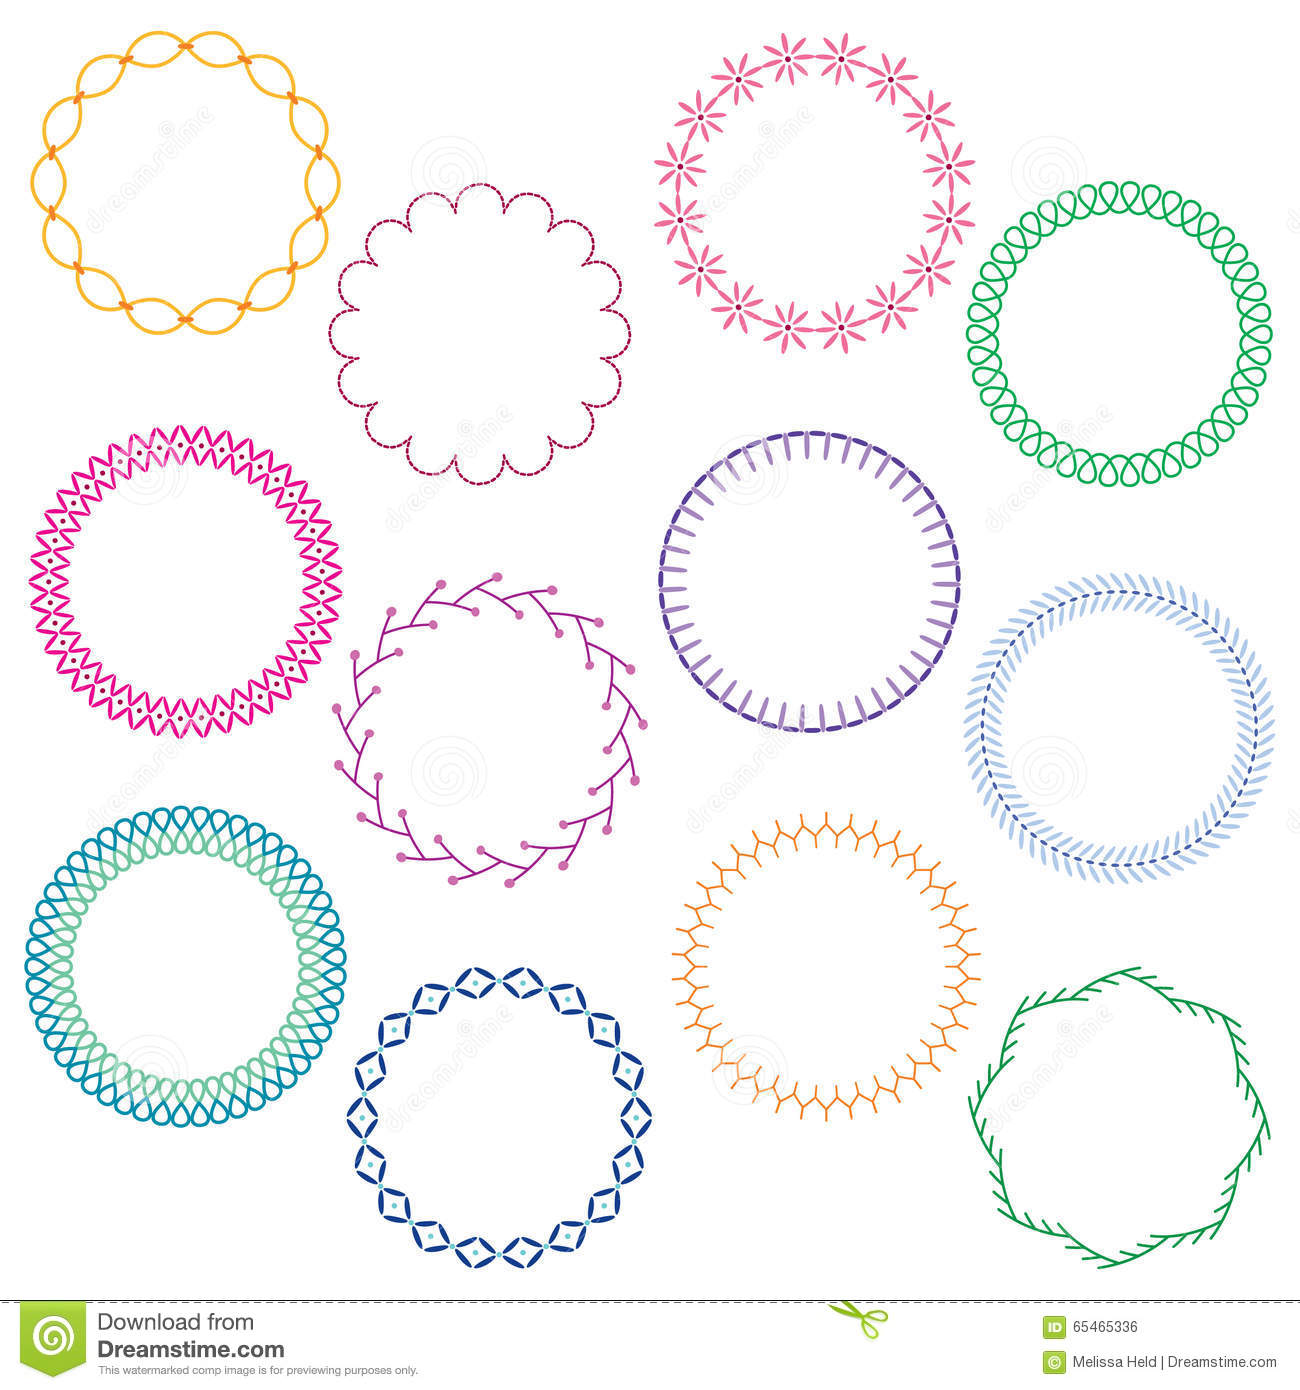 Embroidery stitched circle frames stock illustration